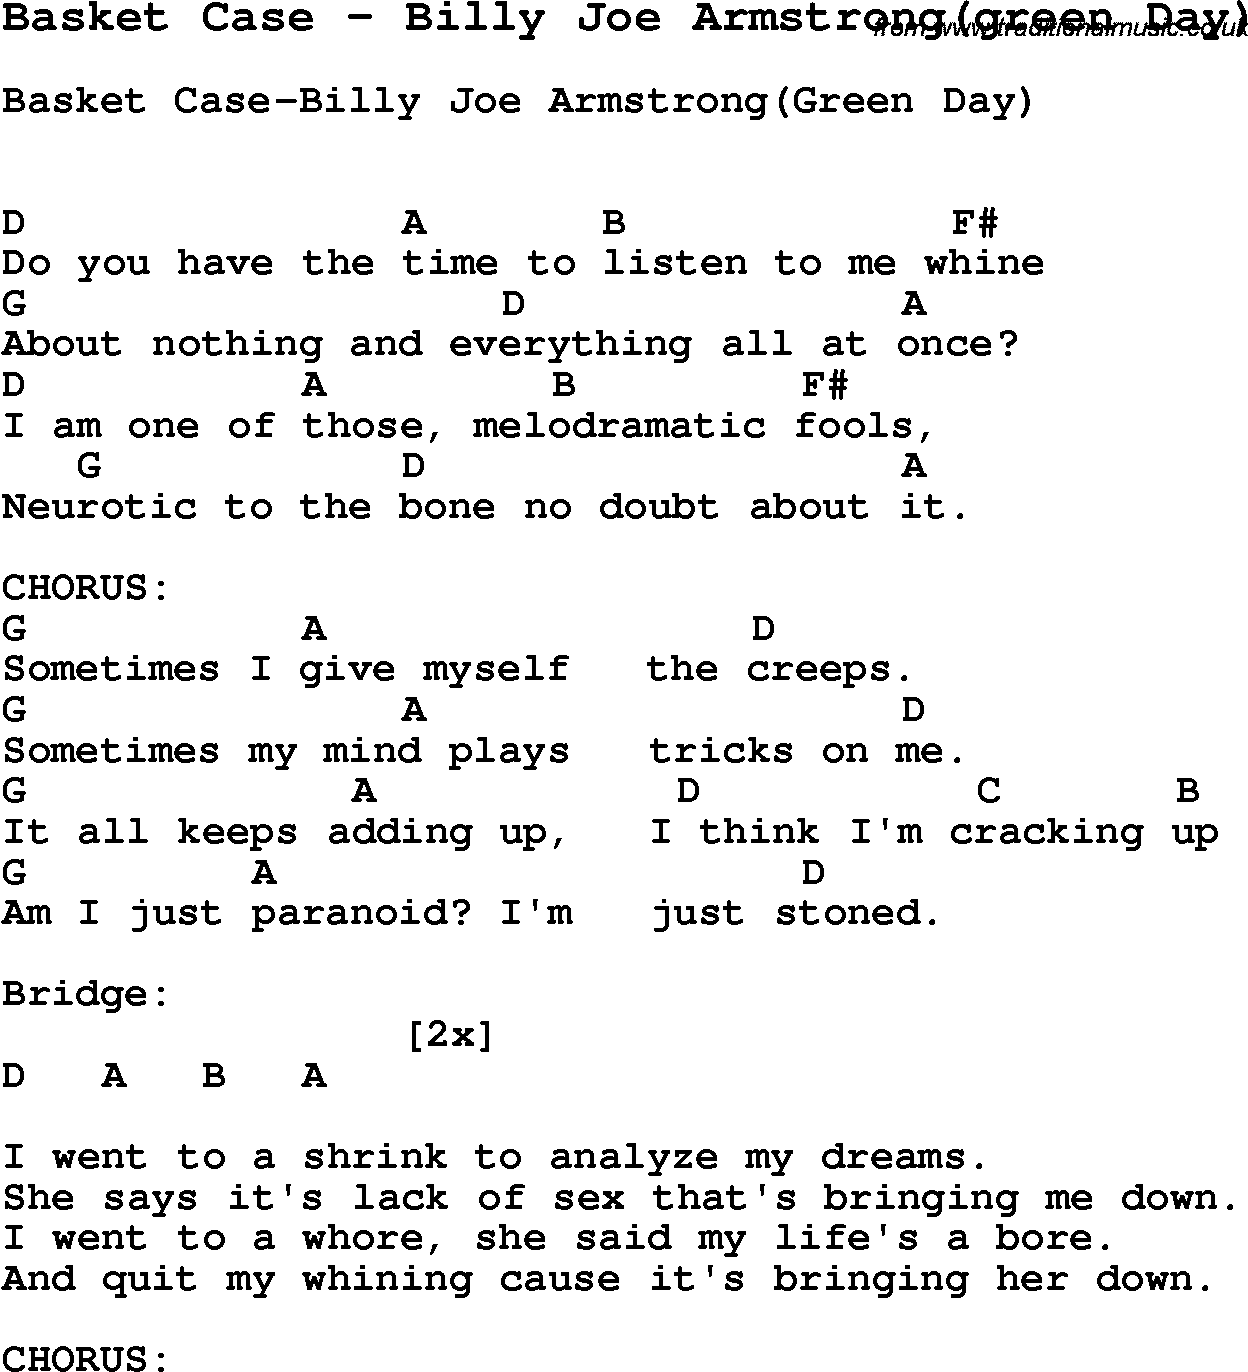 Song Basket Case by Billy Joe Armstrong(green Day), with